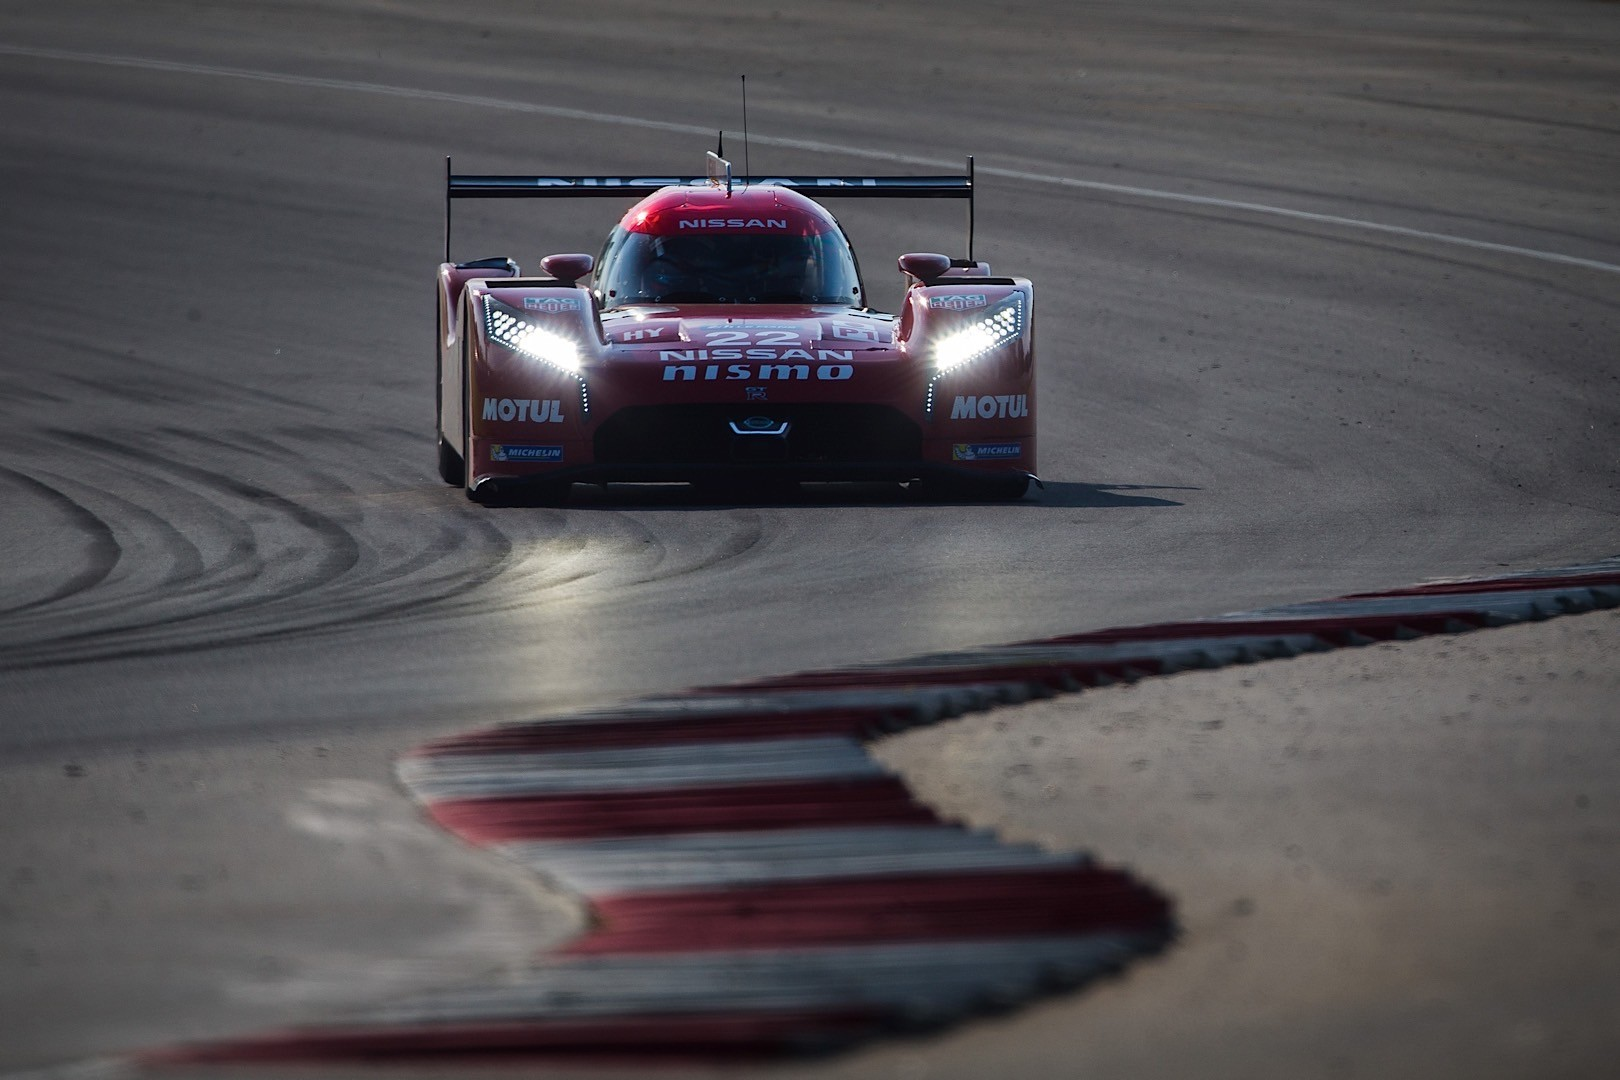 Nissan Gt R Lm Nismo Specs Fully Revealed Ahead Of 2015 Le Mans Race Gtr